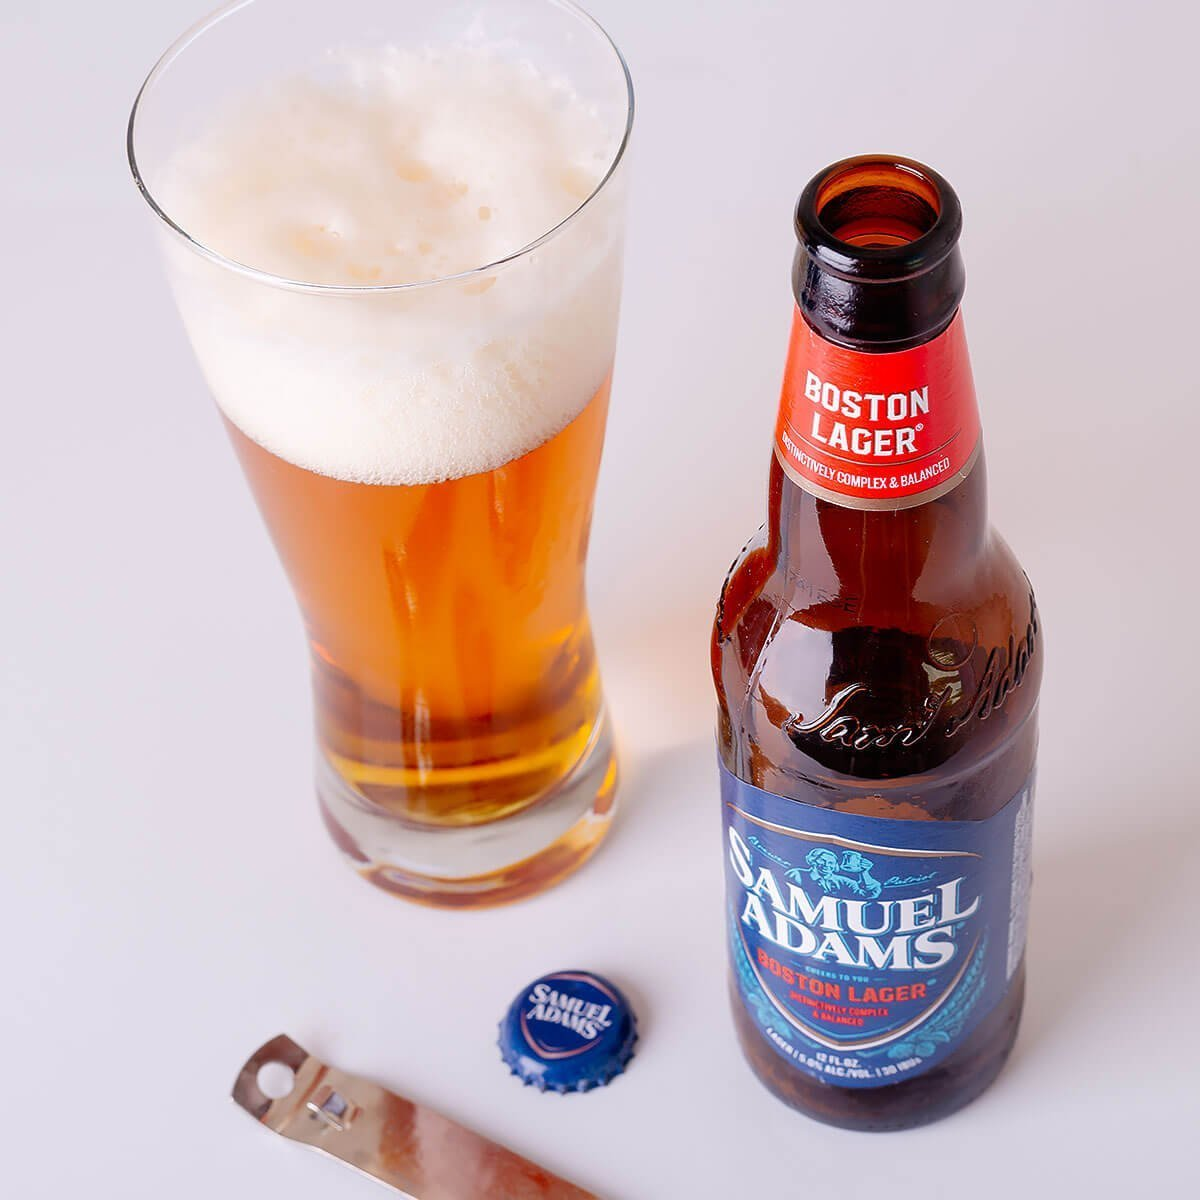 Samuel Adams Boston Lager is a Vienna-style Lager brewed by the Boston Beer Company that blends floral hops, citrus, caramel, and biscuit.